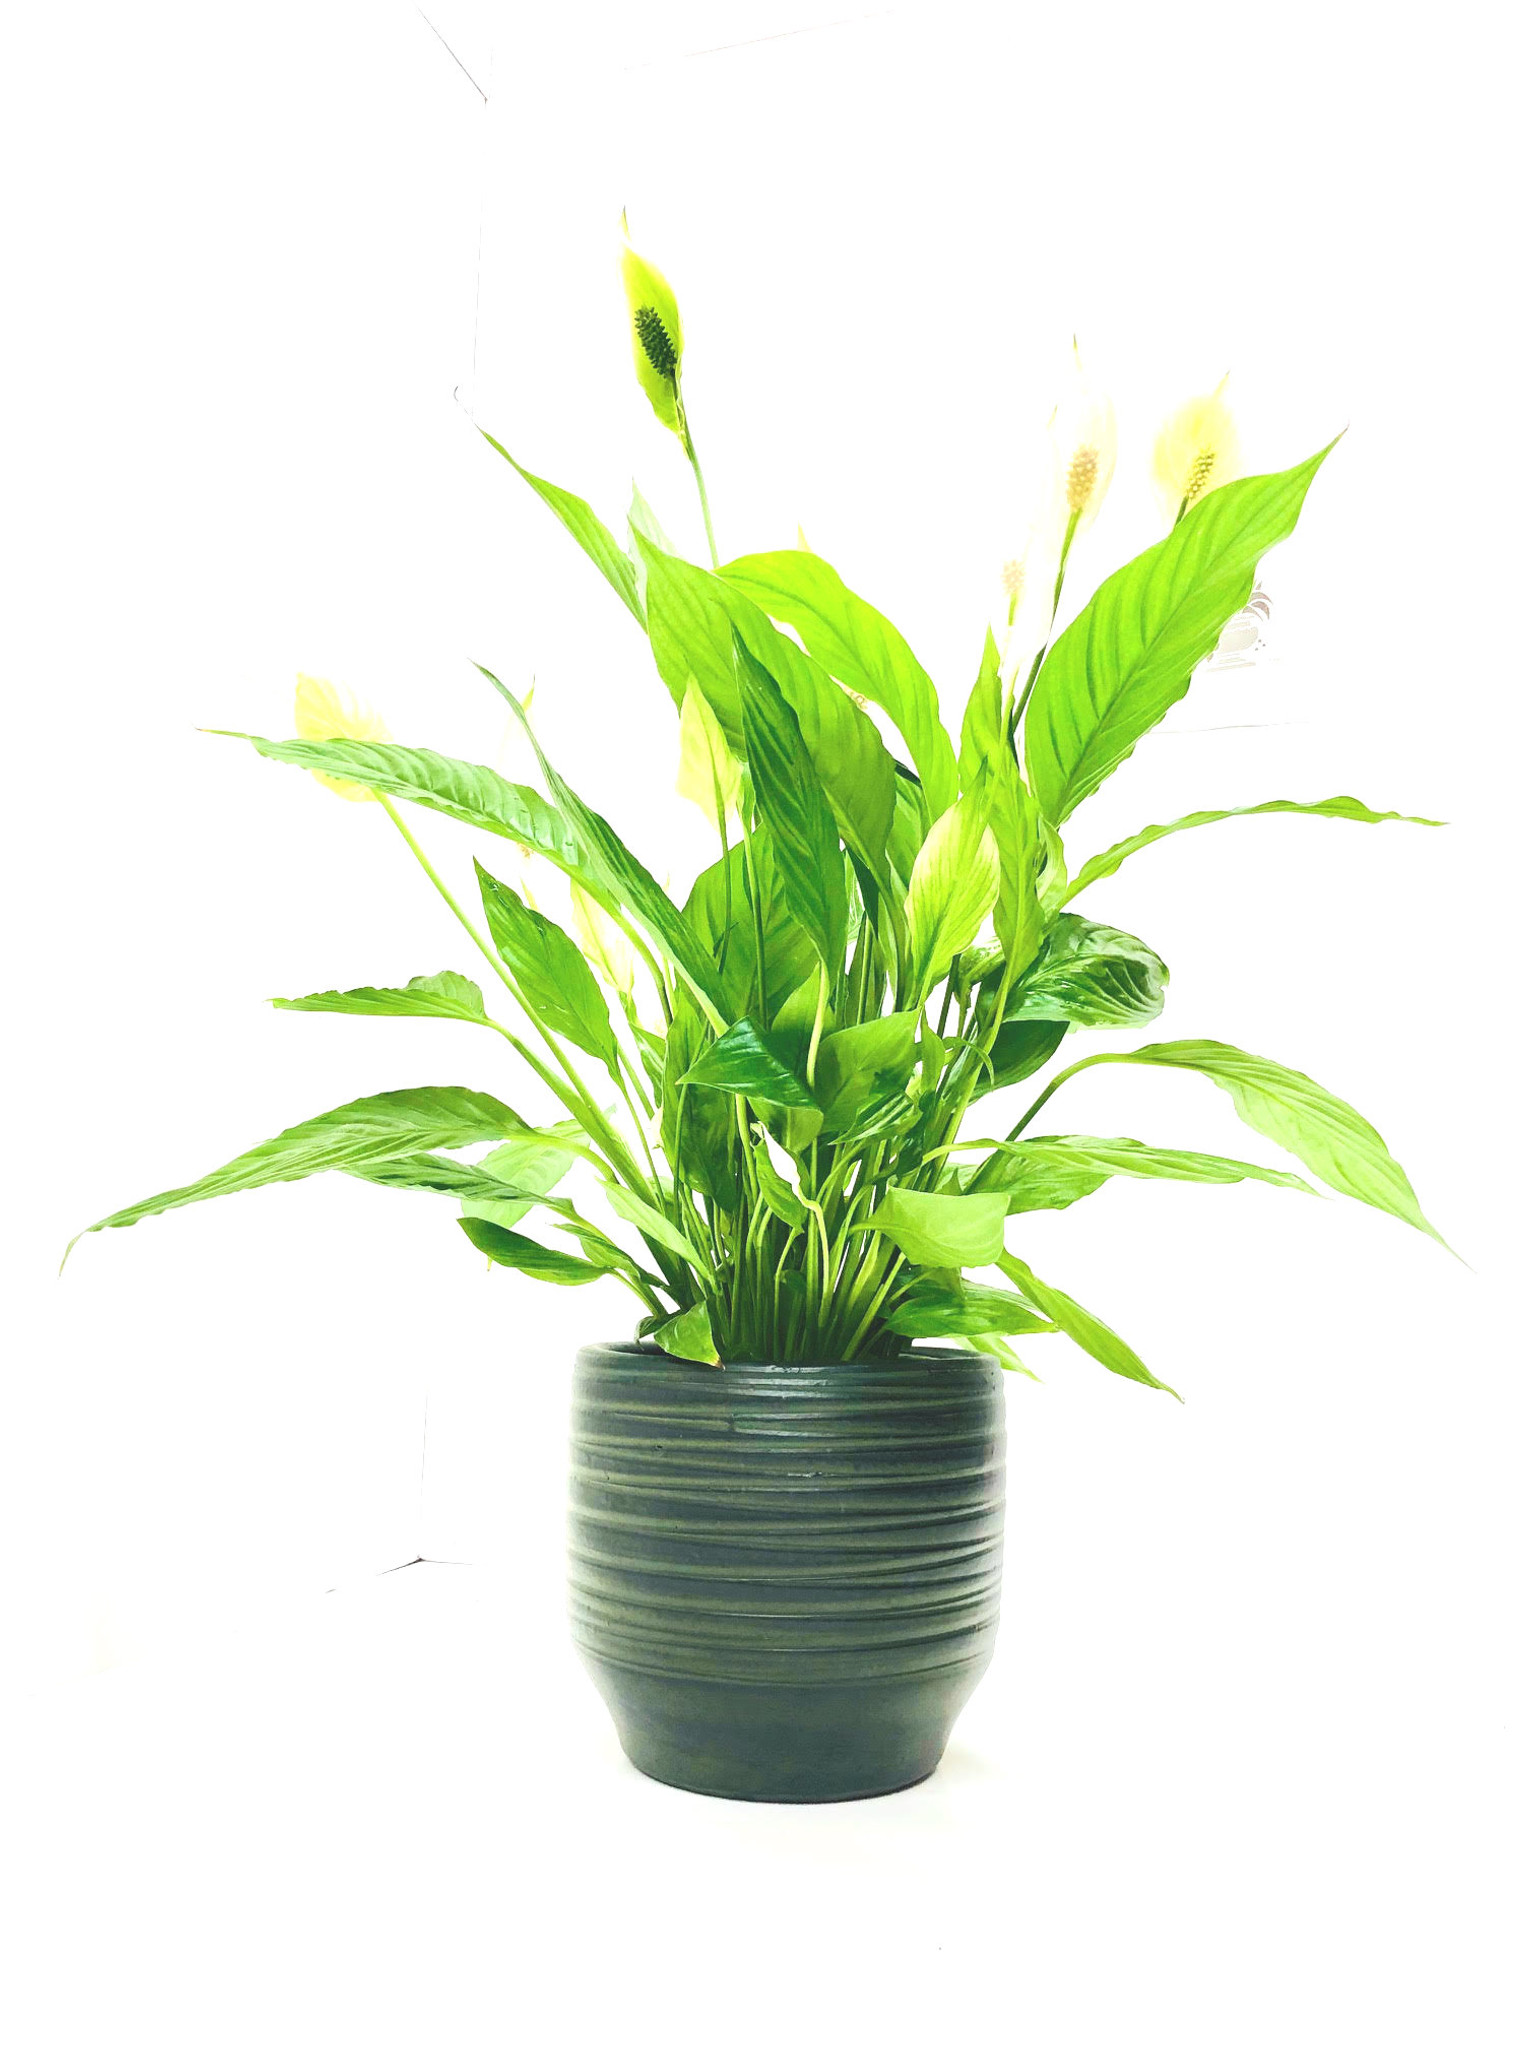 Spathiphyllum vividum is a tall with large flowers Peace lily  house plant  in a tall planter, creating impressive luxury style  great for home offices and reception. Height approx 65-75 cm cm in total